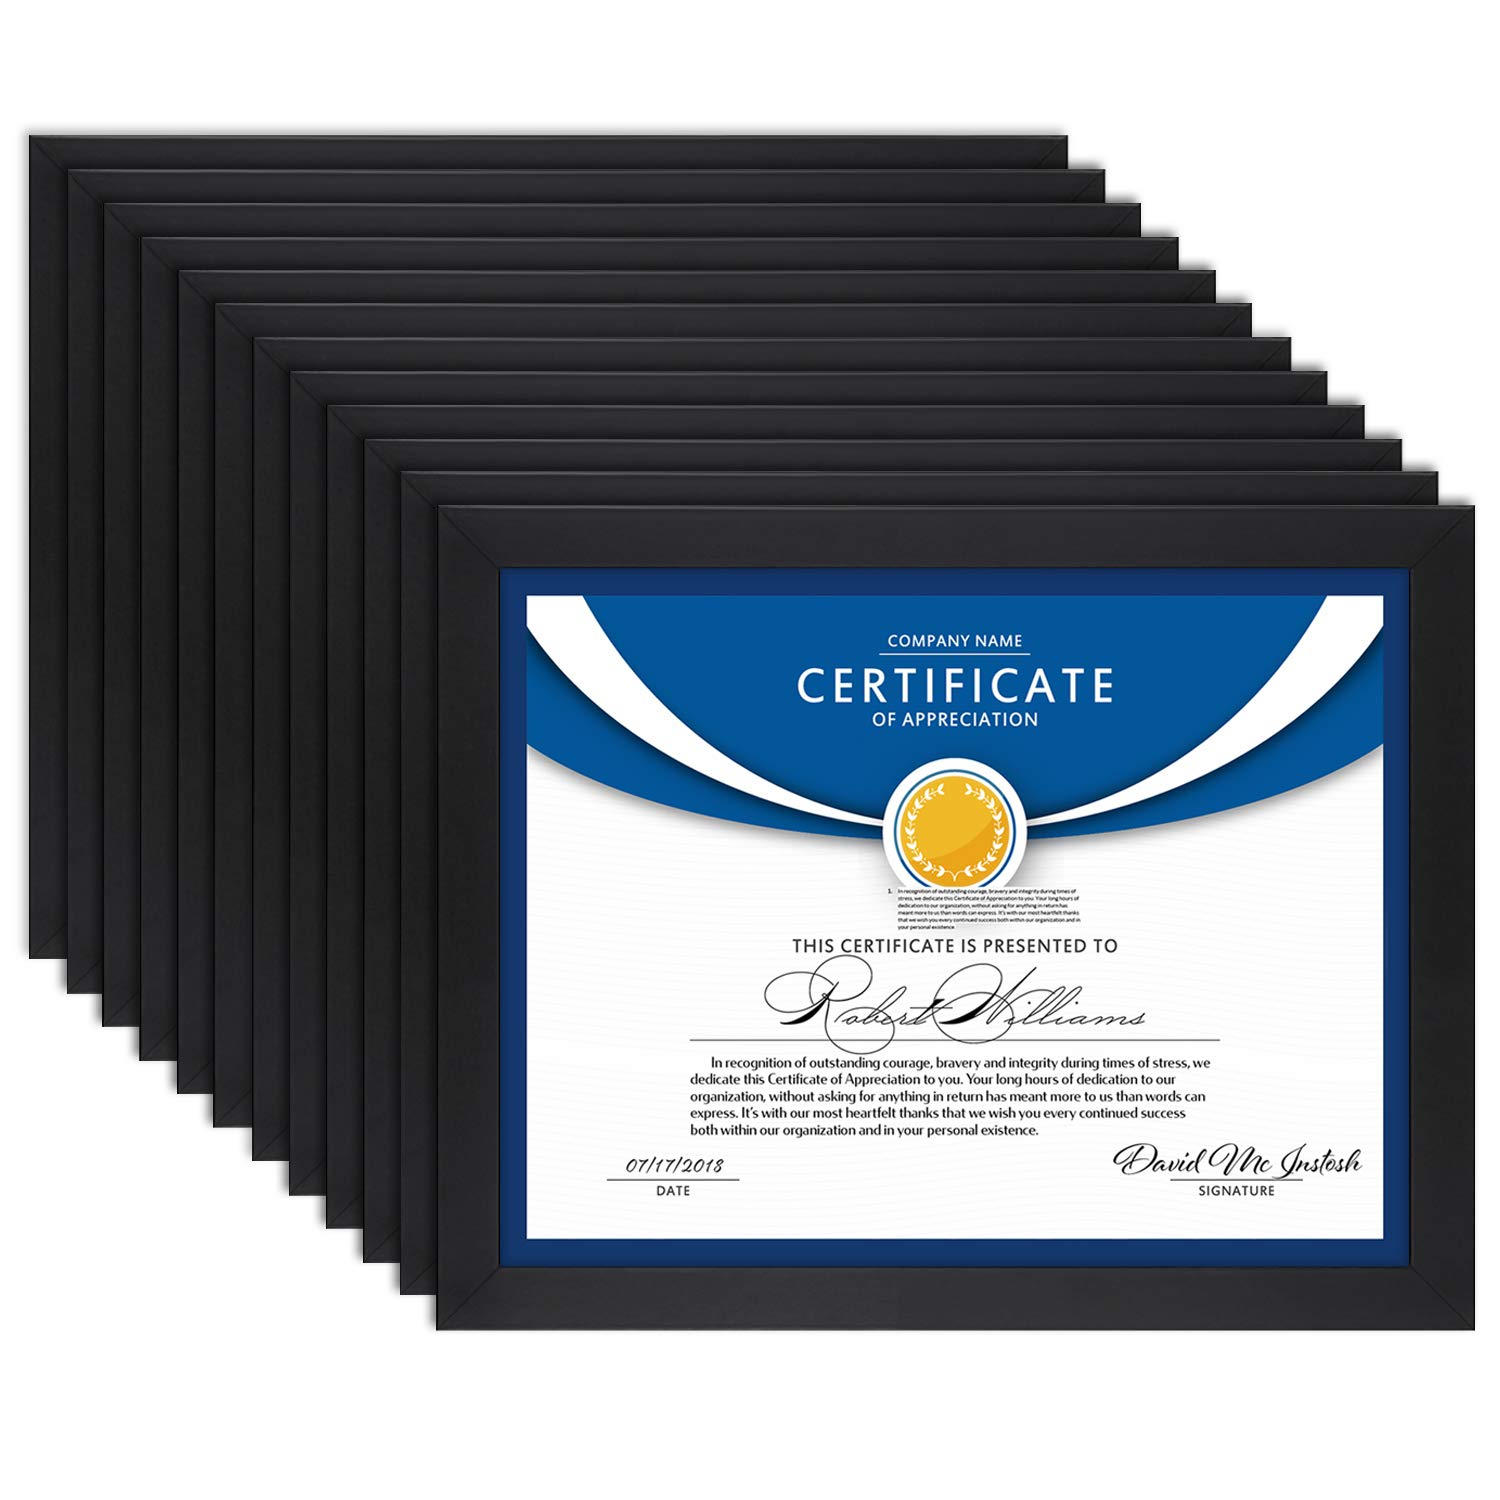 Icona Bay 8.5x11 Diploma Frame (12 Pack, Black), Black Sturdy Wood Composite Certificate Frame, Document Frame Bulk, Wall or Table Mount, Set of 12 Exclusives Collection by Icona Bay (Image #1)